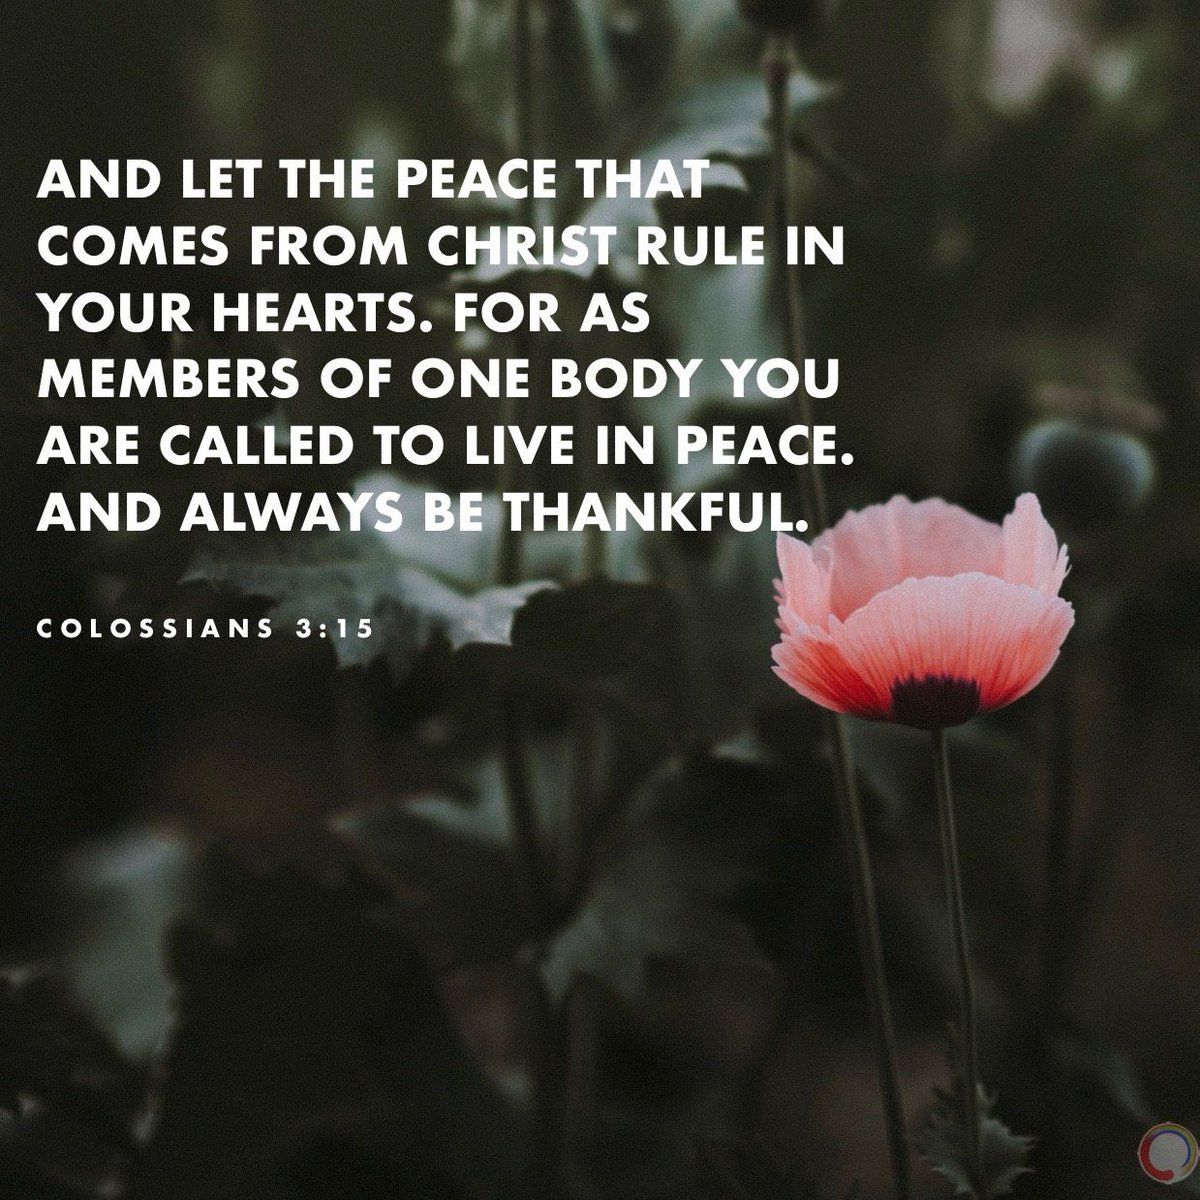 """""""And let the peace that comes from Christ rule in your hearts."""" ~ Colossians 3:15 . . . #VOTD #VerseOfTheDay #Colossians #TheBible #Scripture #WordOfGod #WordOfGodSpeak #EveryWord #JesusIsKing #Jesus #Peace #Christ #Thankfulpic.twitter.com/Idd6koymDJ"""